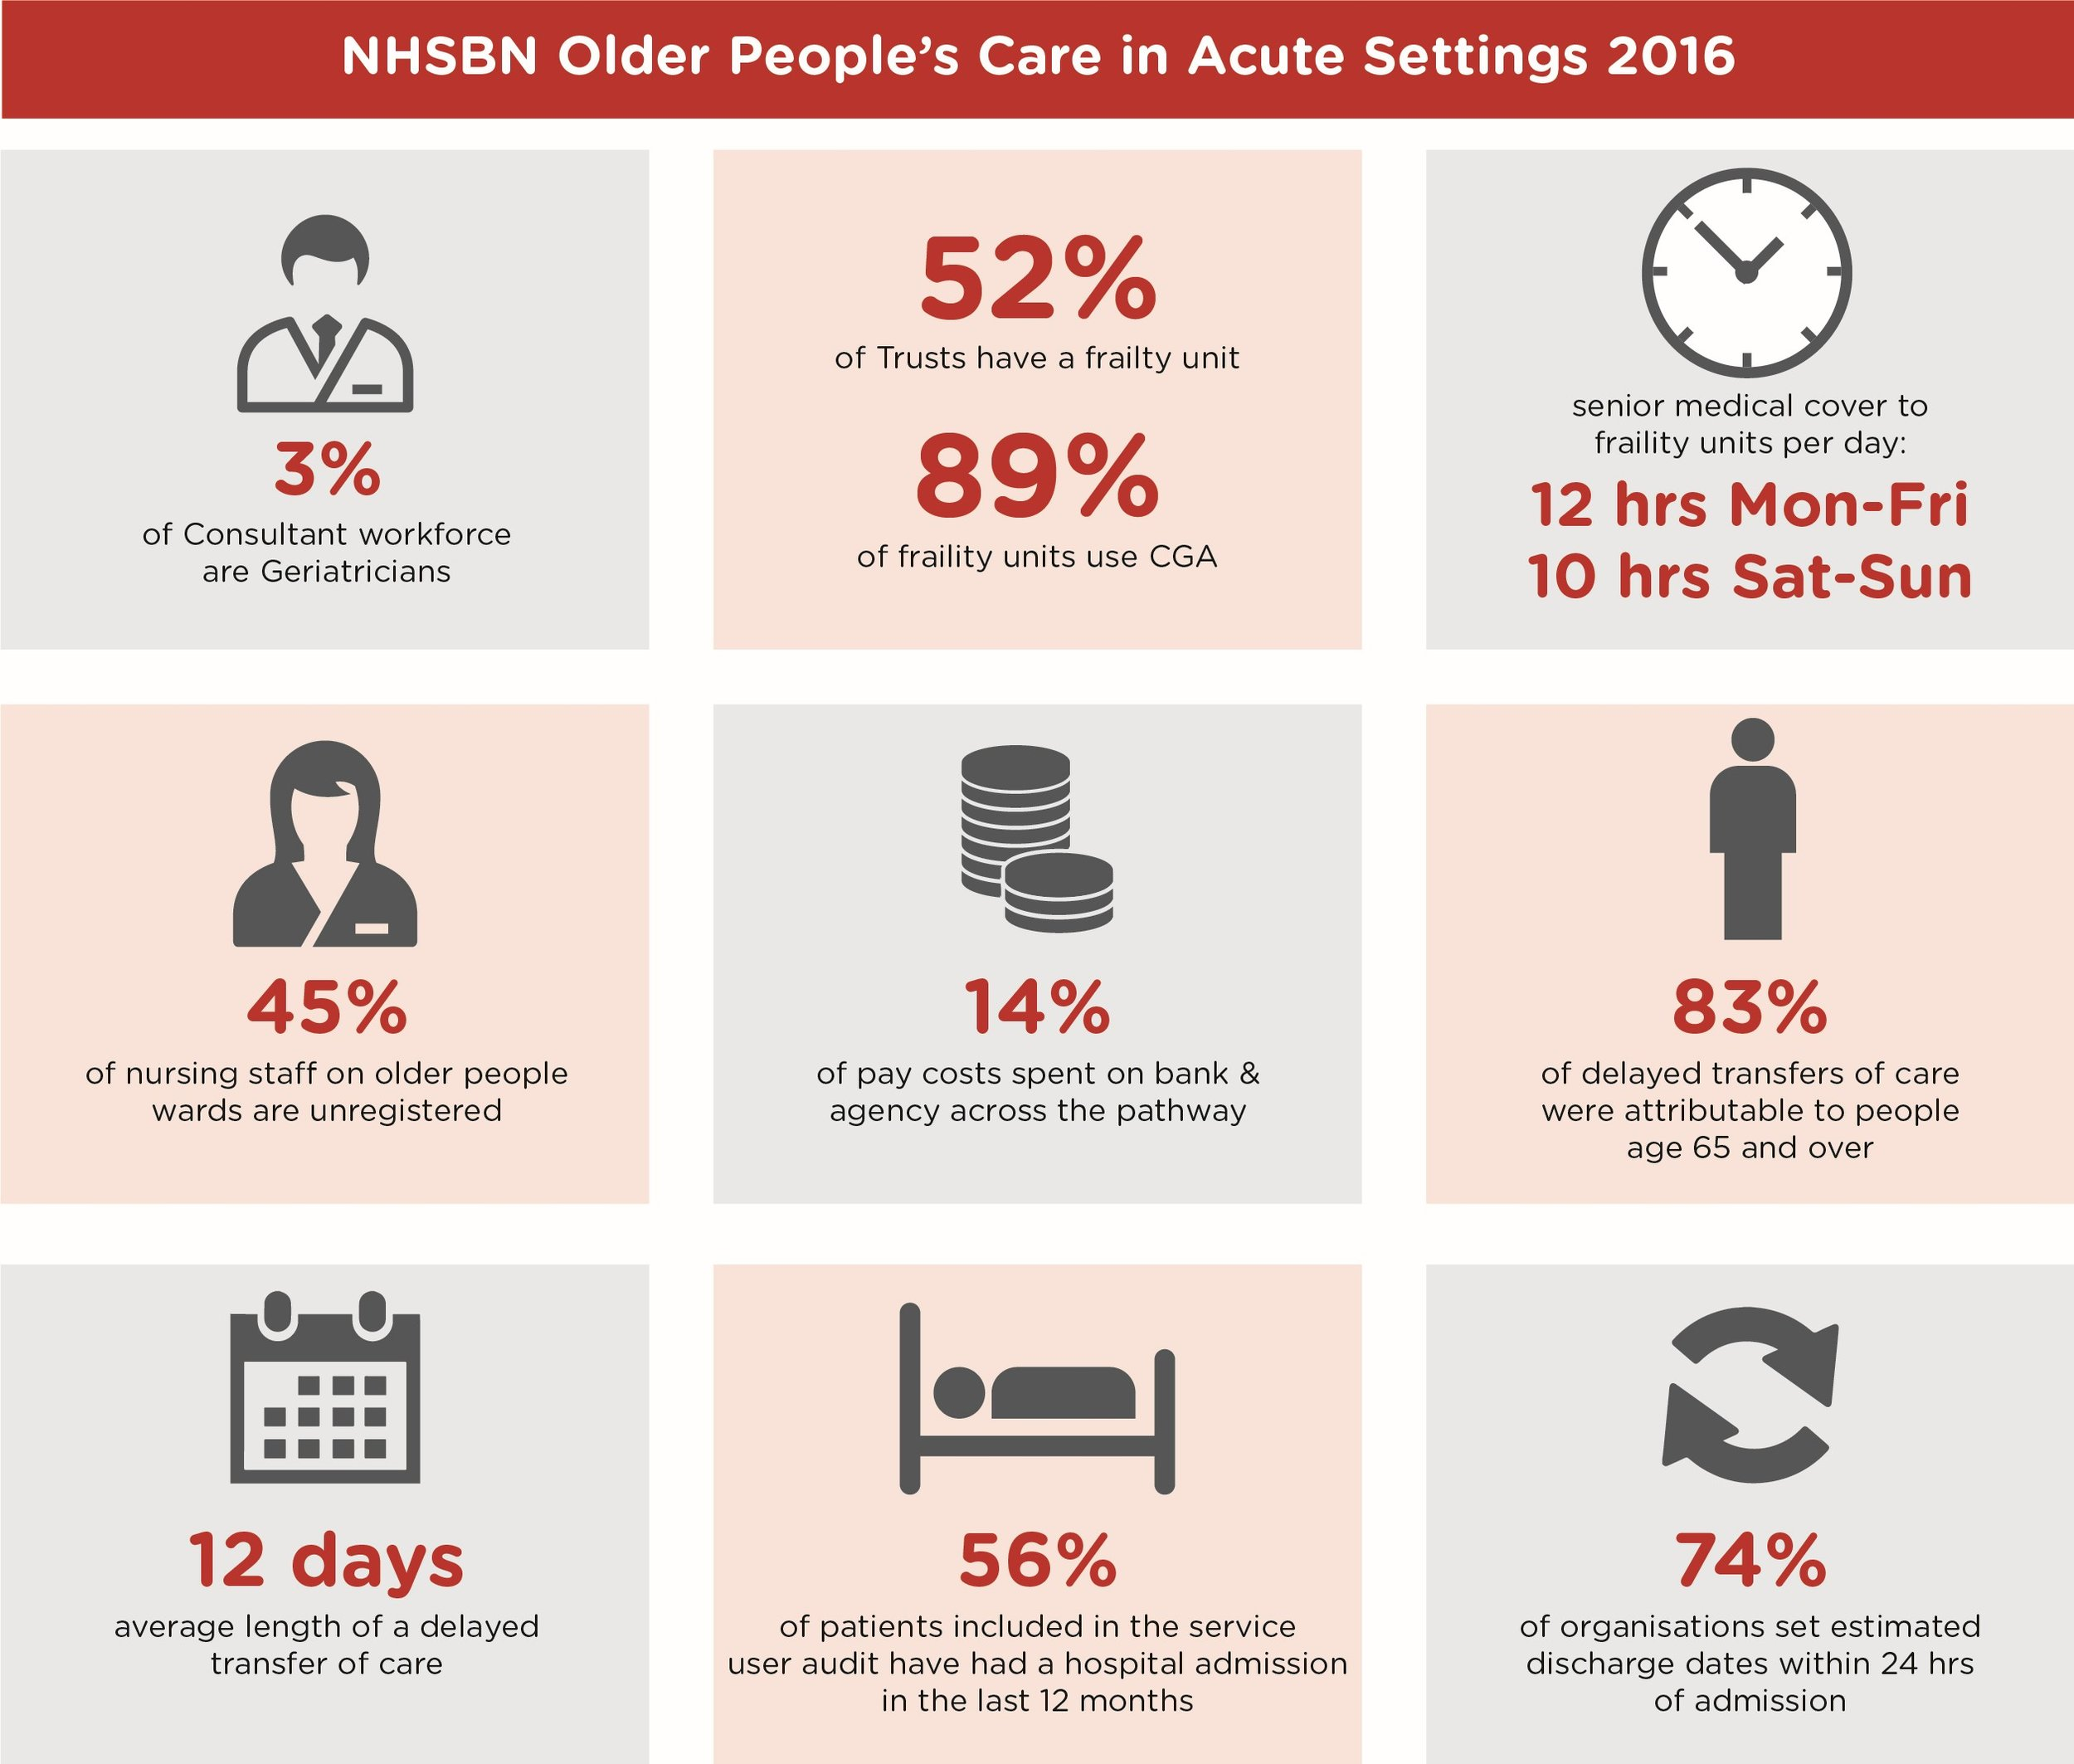 Older Peoples' Care in Acute Settings Infographic